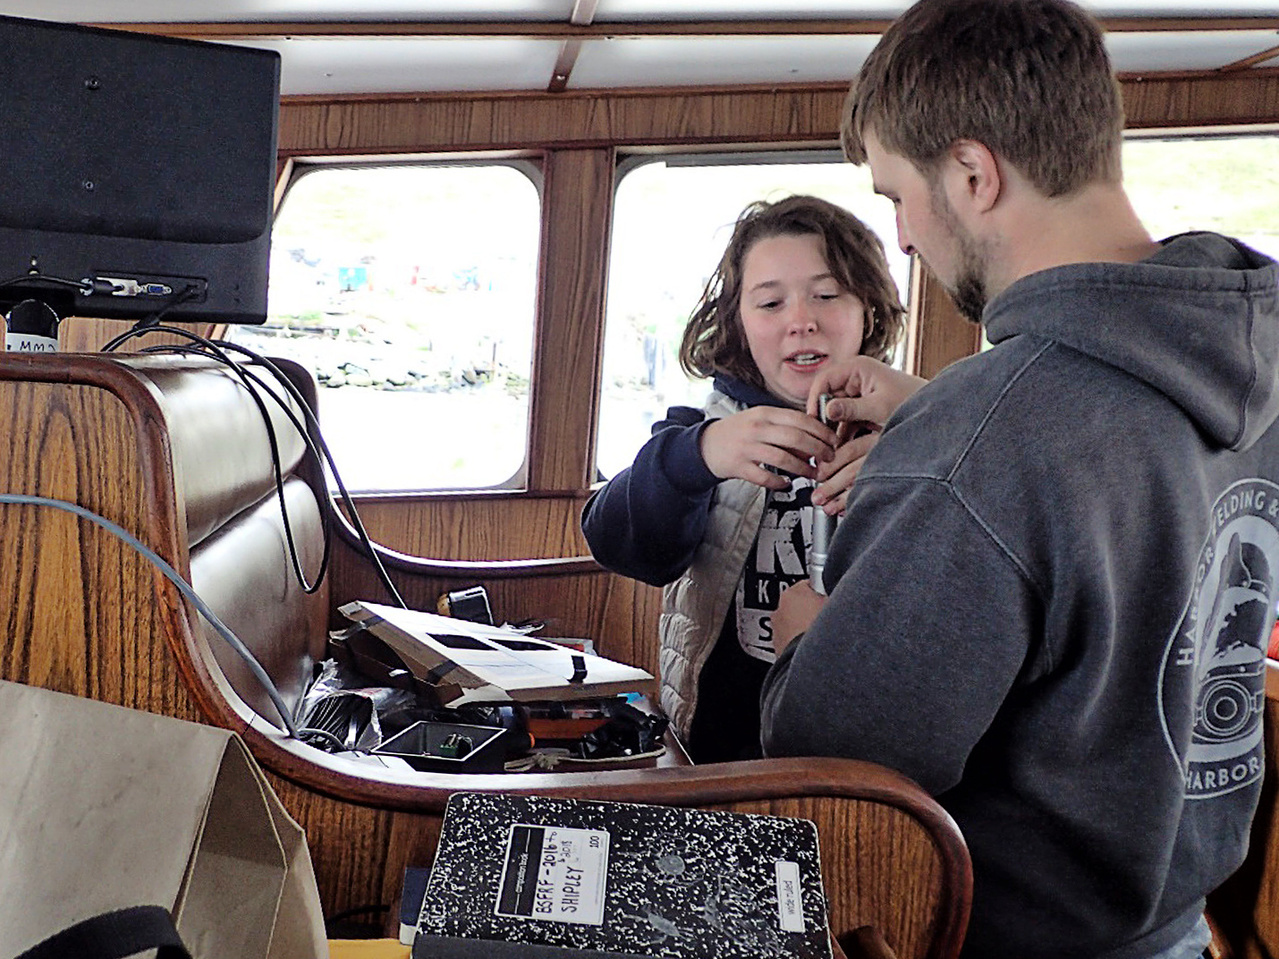 Bering Sea Fisheries Research Foundation biologists Madison Shipley and Charlie Heller prepare sensors for the Tanner crab trawl survey.